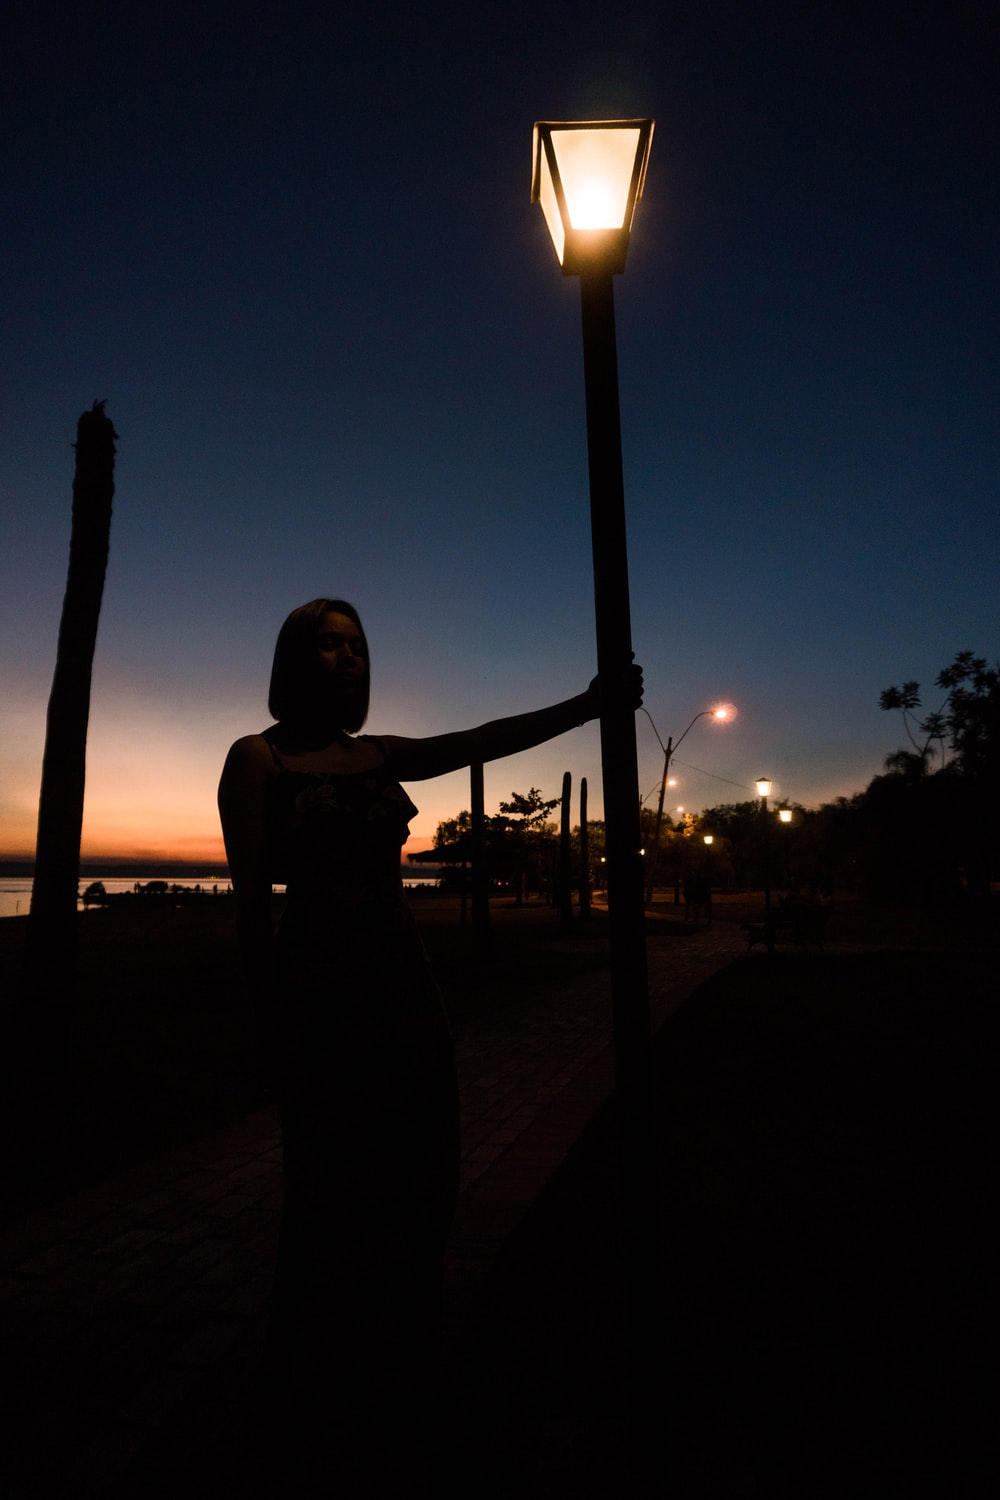 woman holding post lamp during nighttime